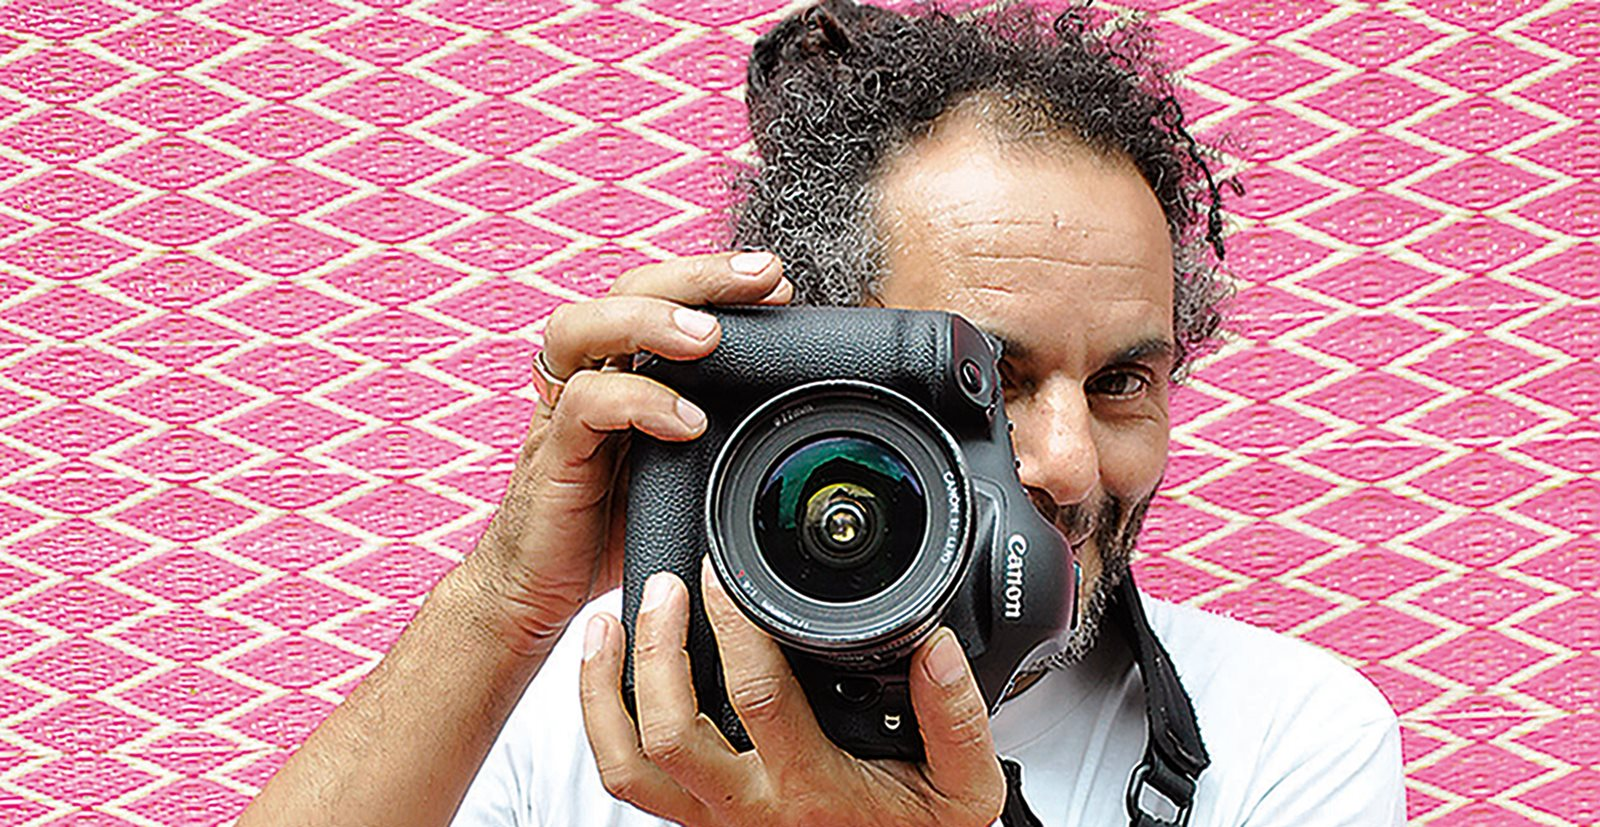 Hassan Hajjaj's Hot Remix